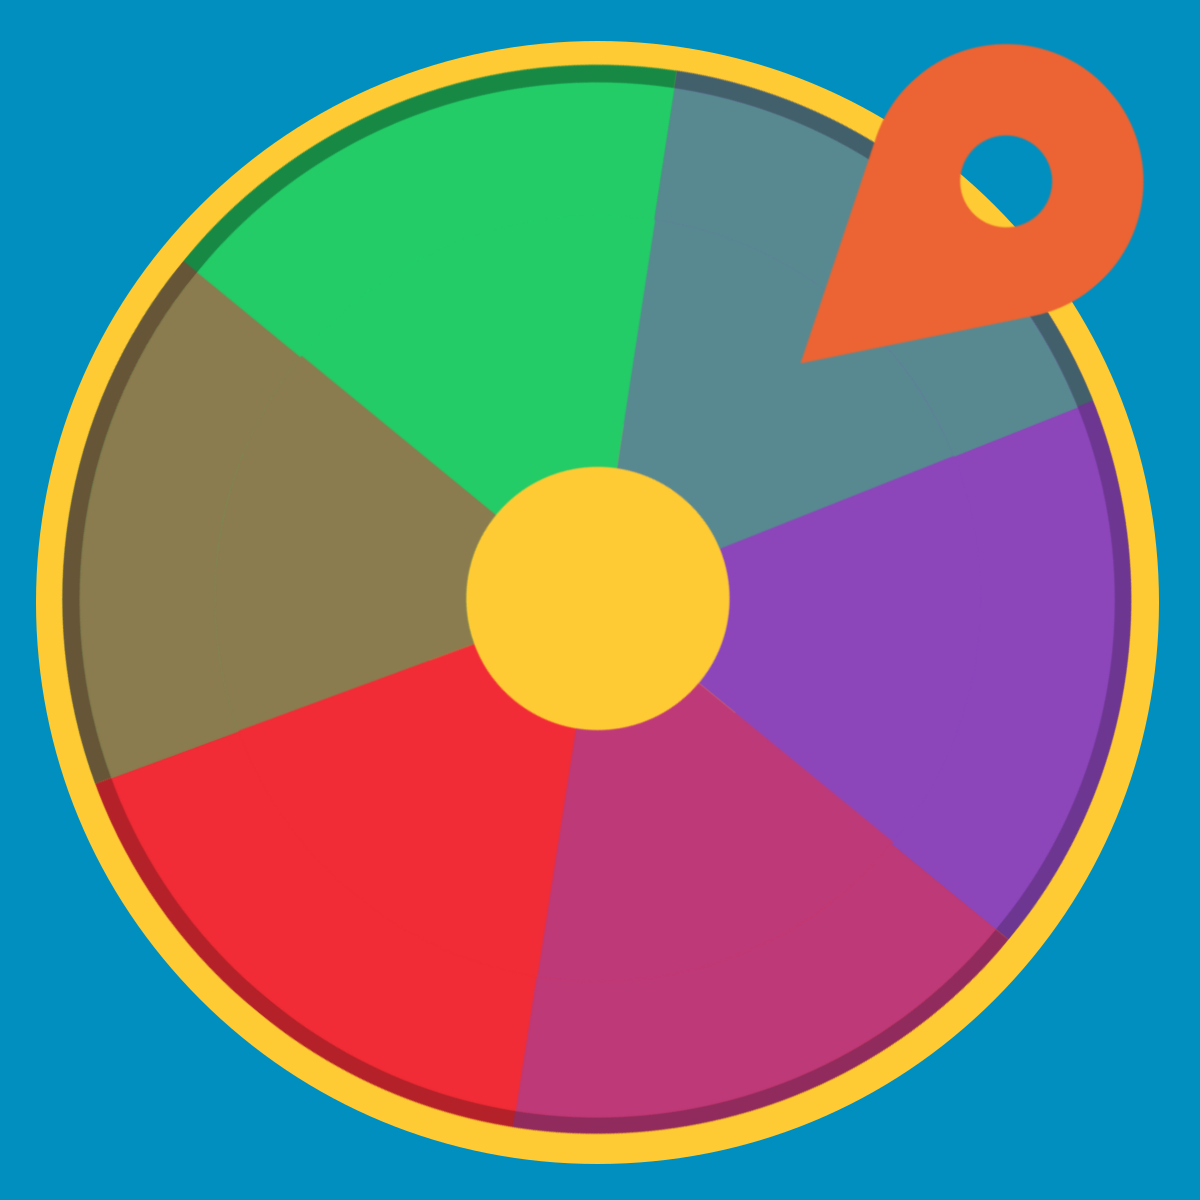 Spin To Win by Secomapp.